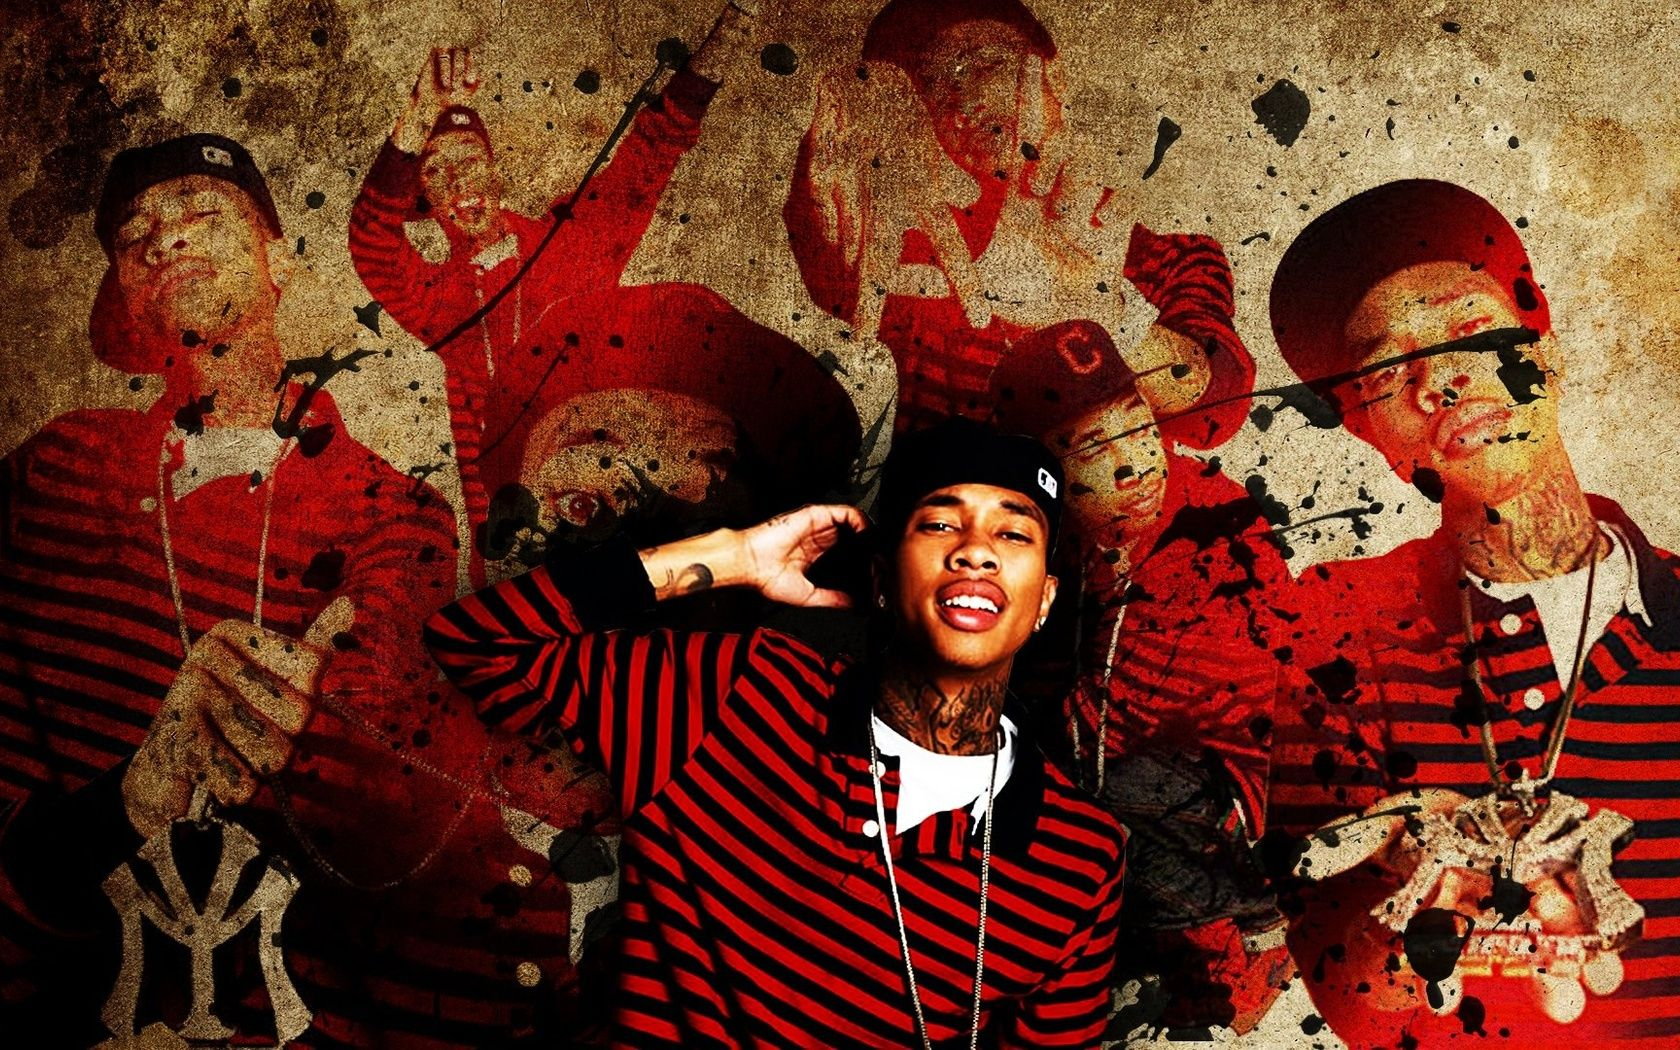 The Game Rapper Wallpapers Wallpaper 16801050 Wallpapers Tyga 36